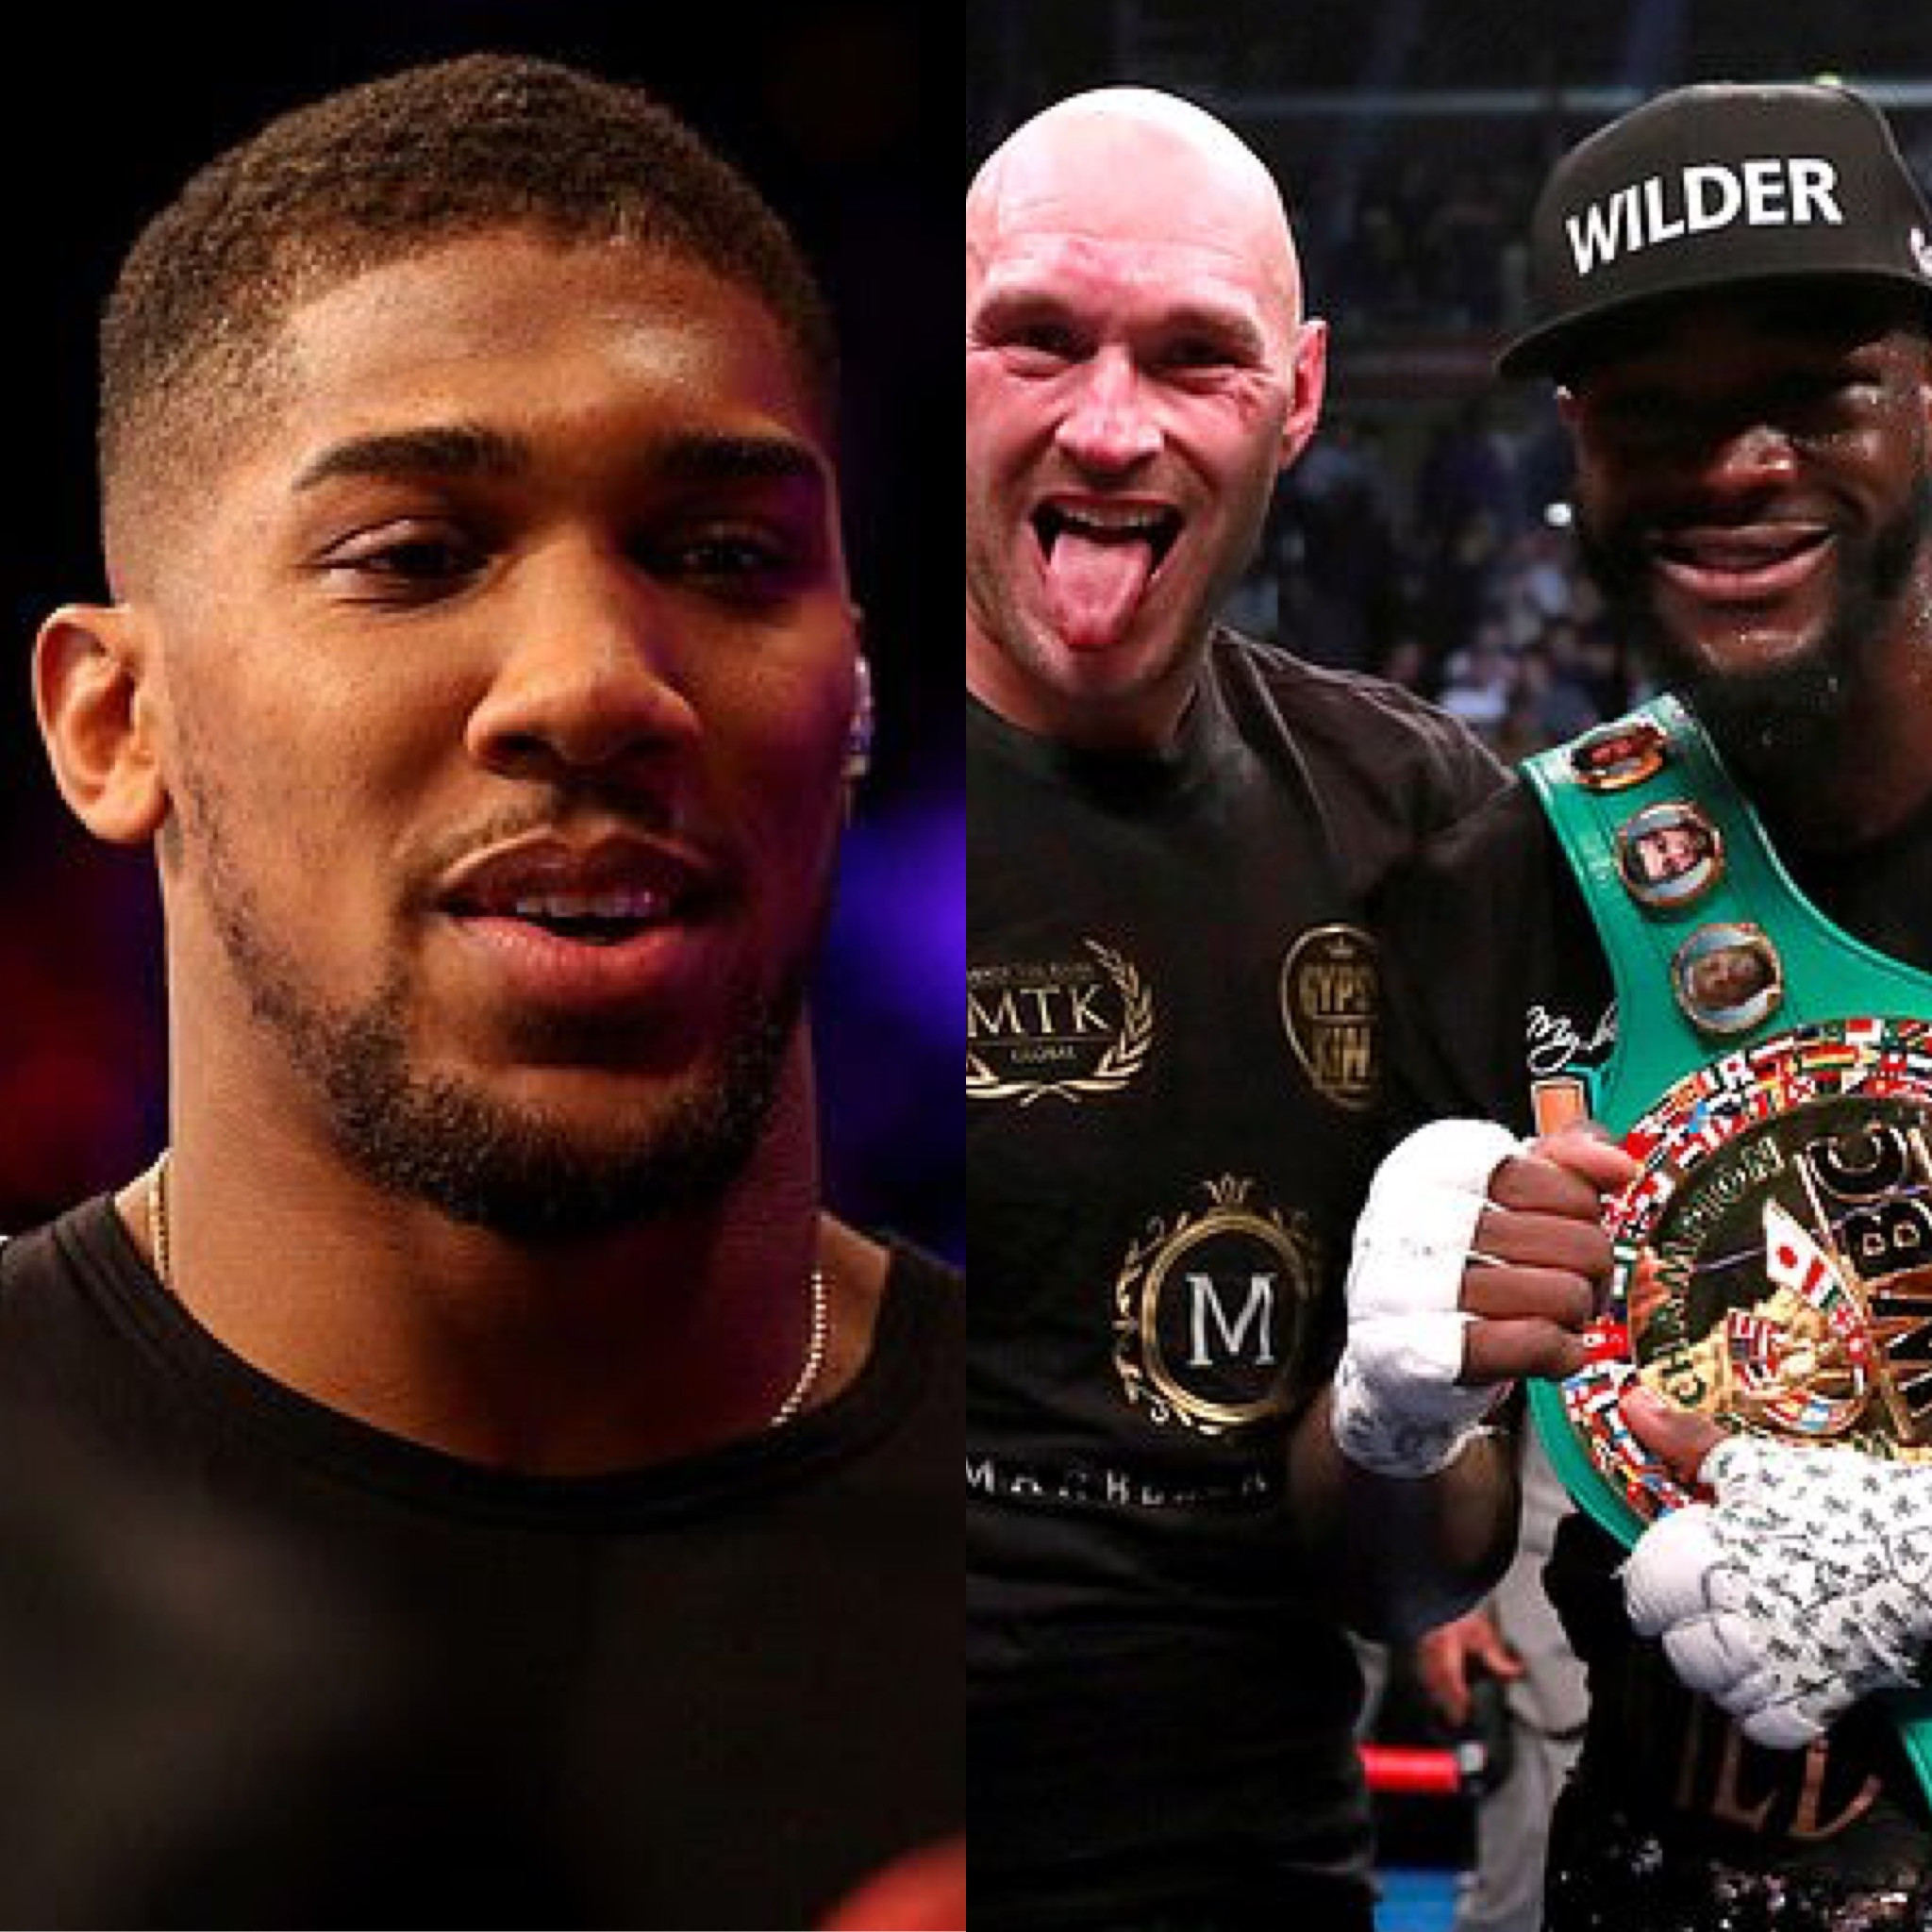 'Deontay Wilder and Tyson Fury: if you think you can beat Anthony Joshua, come get him' - AJ's manager, Eddie Hearn, pleads ahead of 10 day deadline